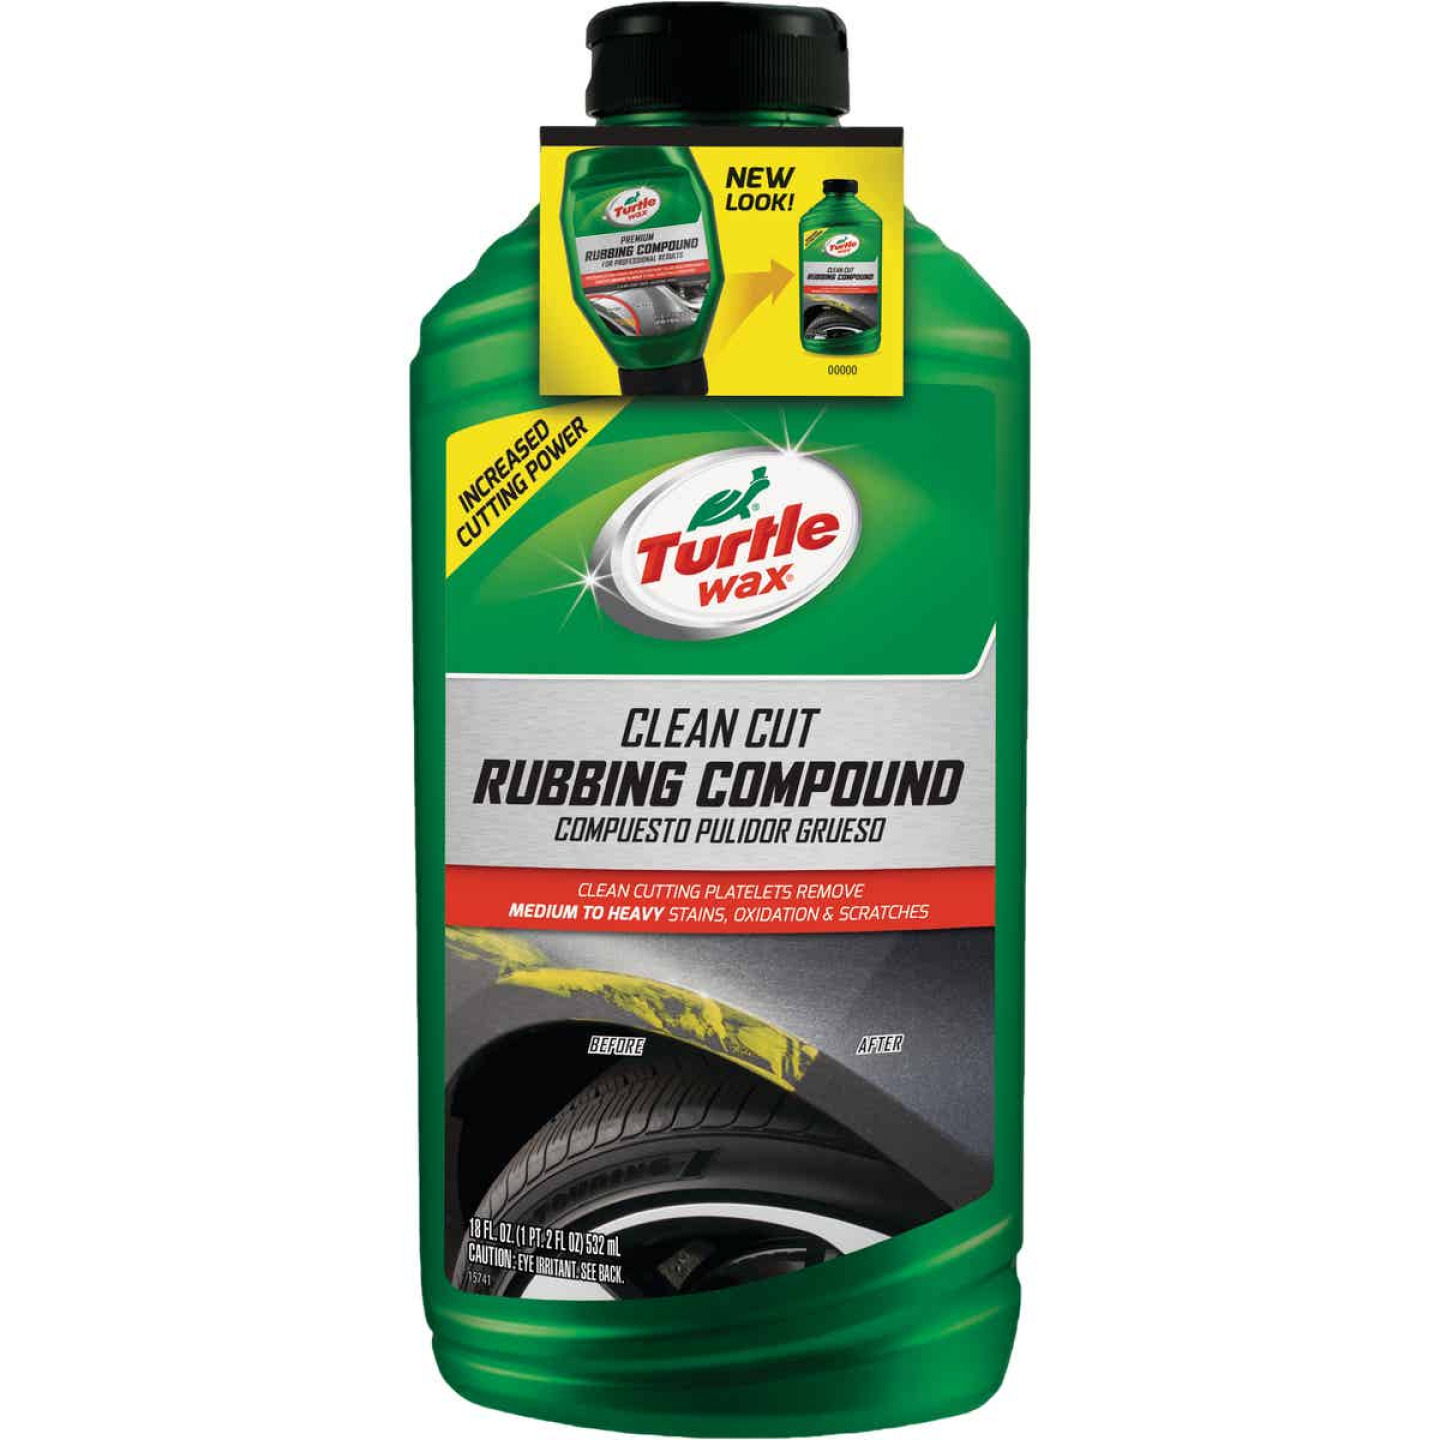 Turtle Wax RENEW Rx 18 oz Liquid Rubbing Compound Image 1